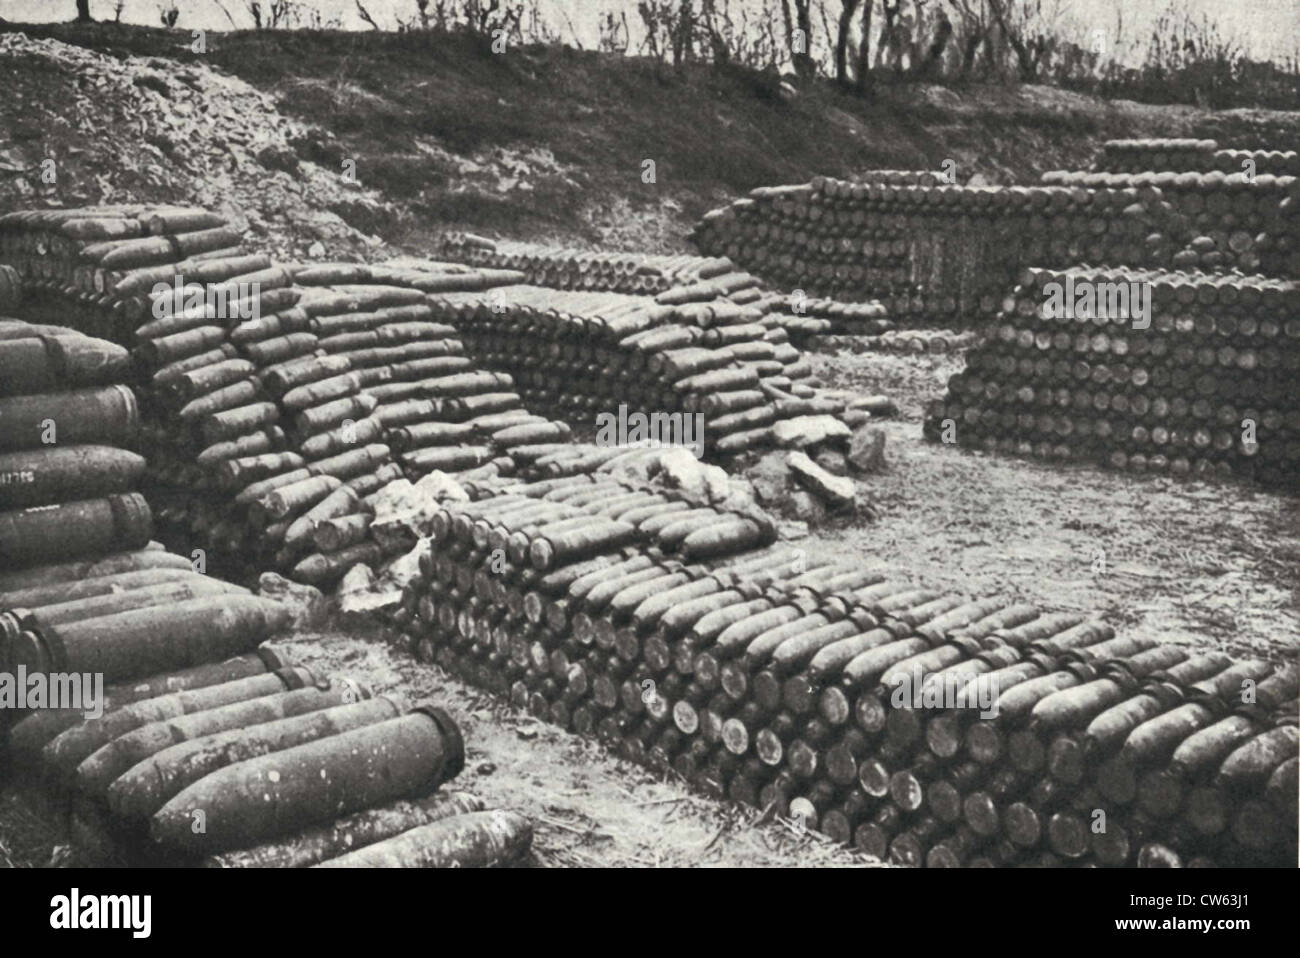 Amunition supplies for the Battle of Verdun - Stock Image